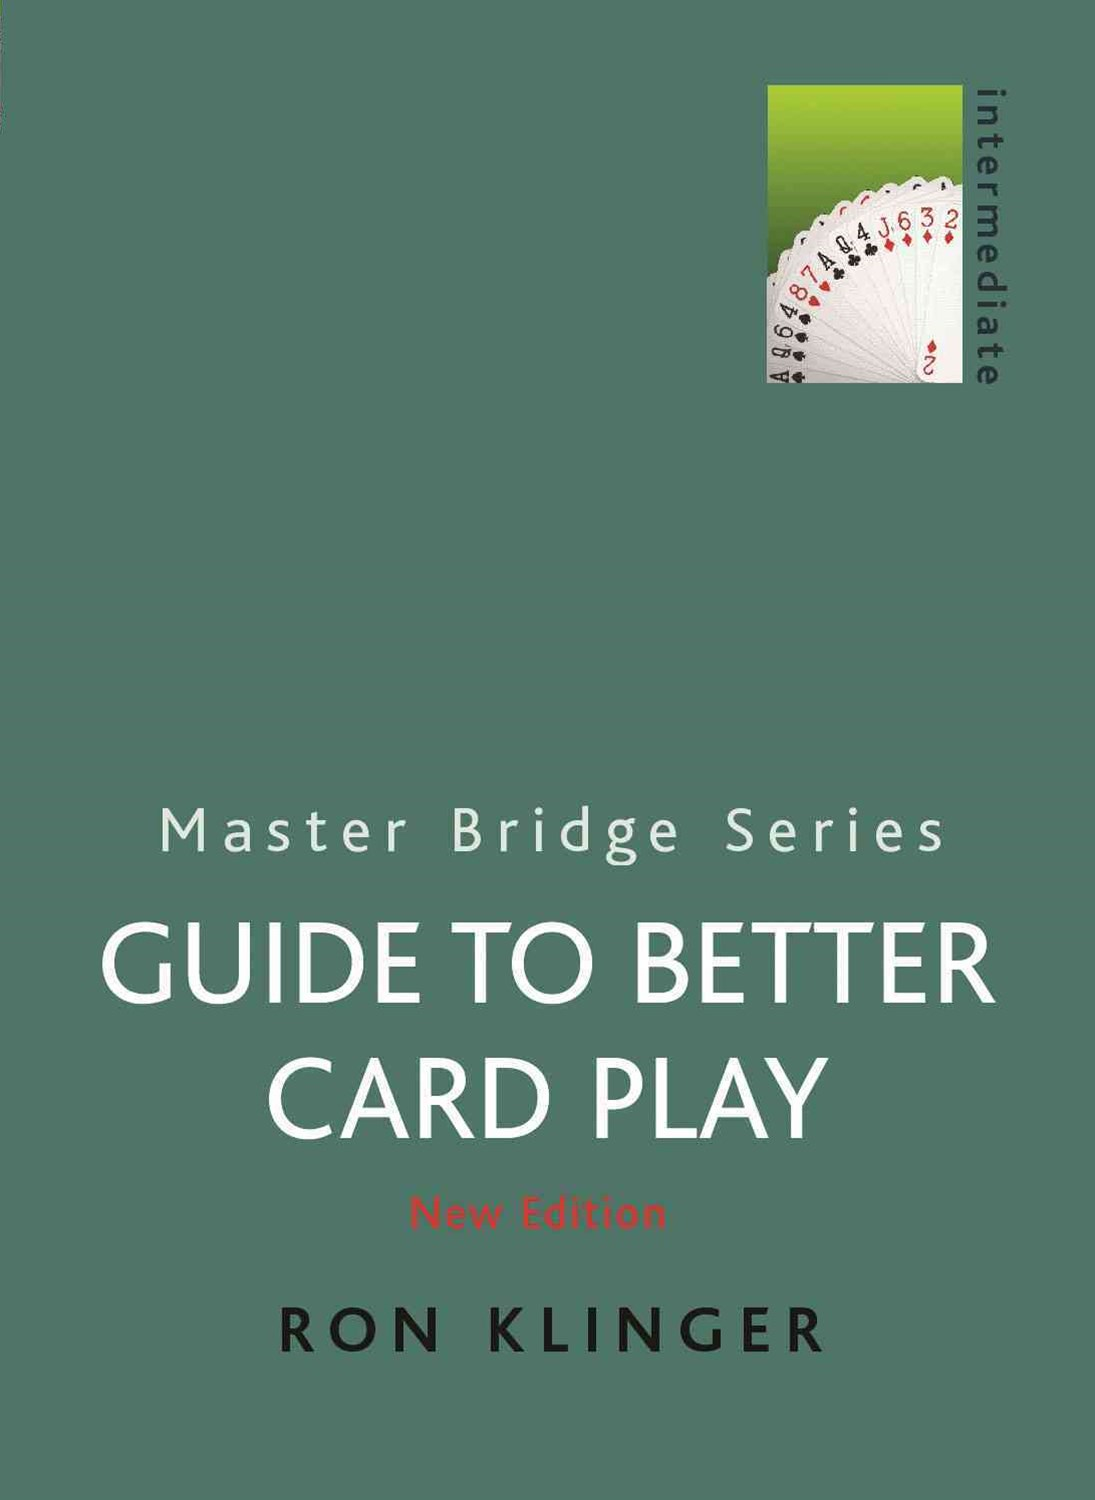 A Guide to Better Card Play